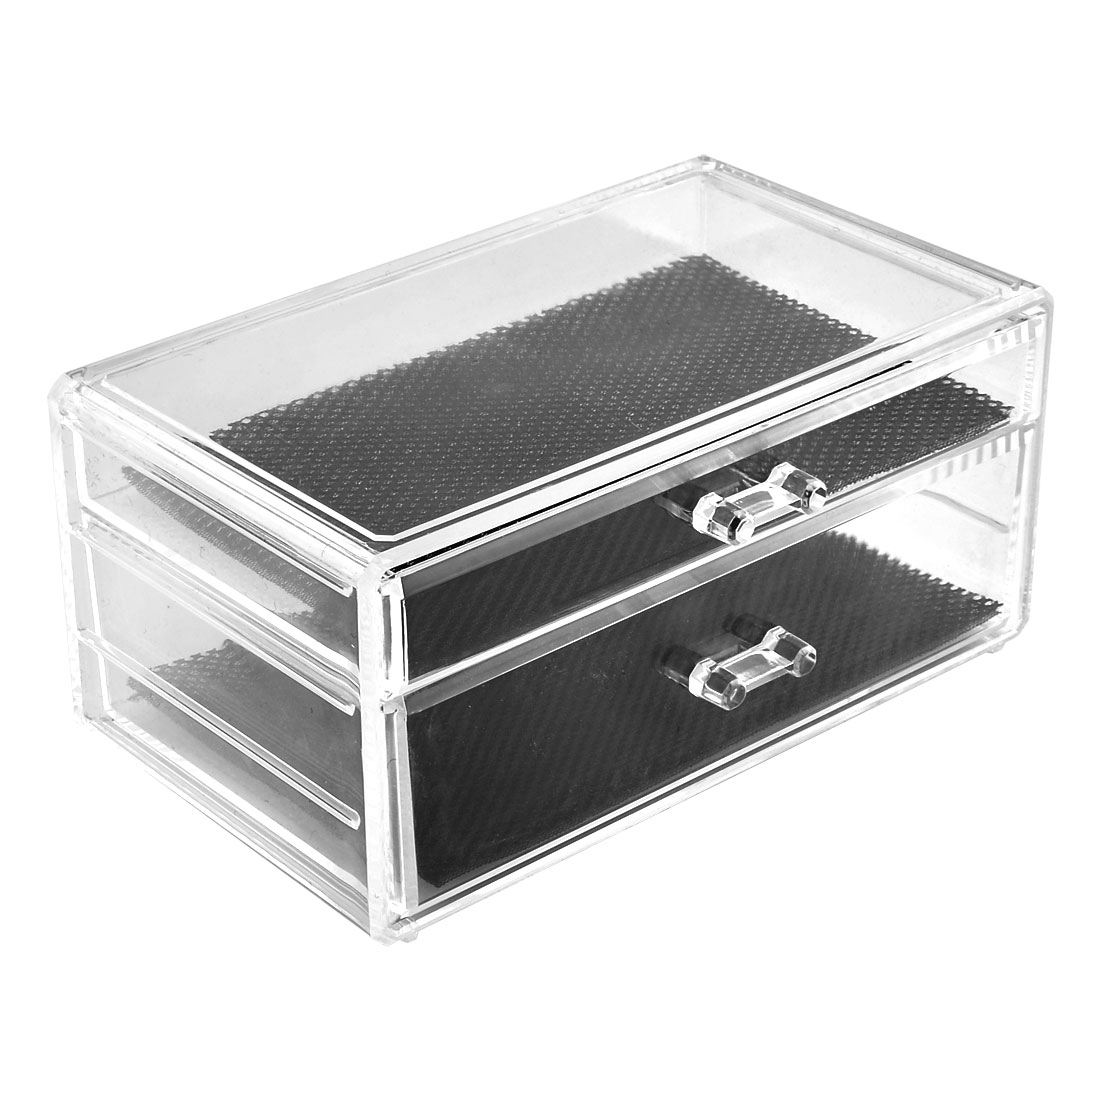 Household Acrylic Dual Layers Drawers Jewelry Makeup Dressing Case Organizer Display Box